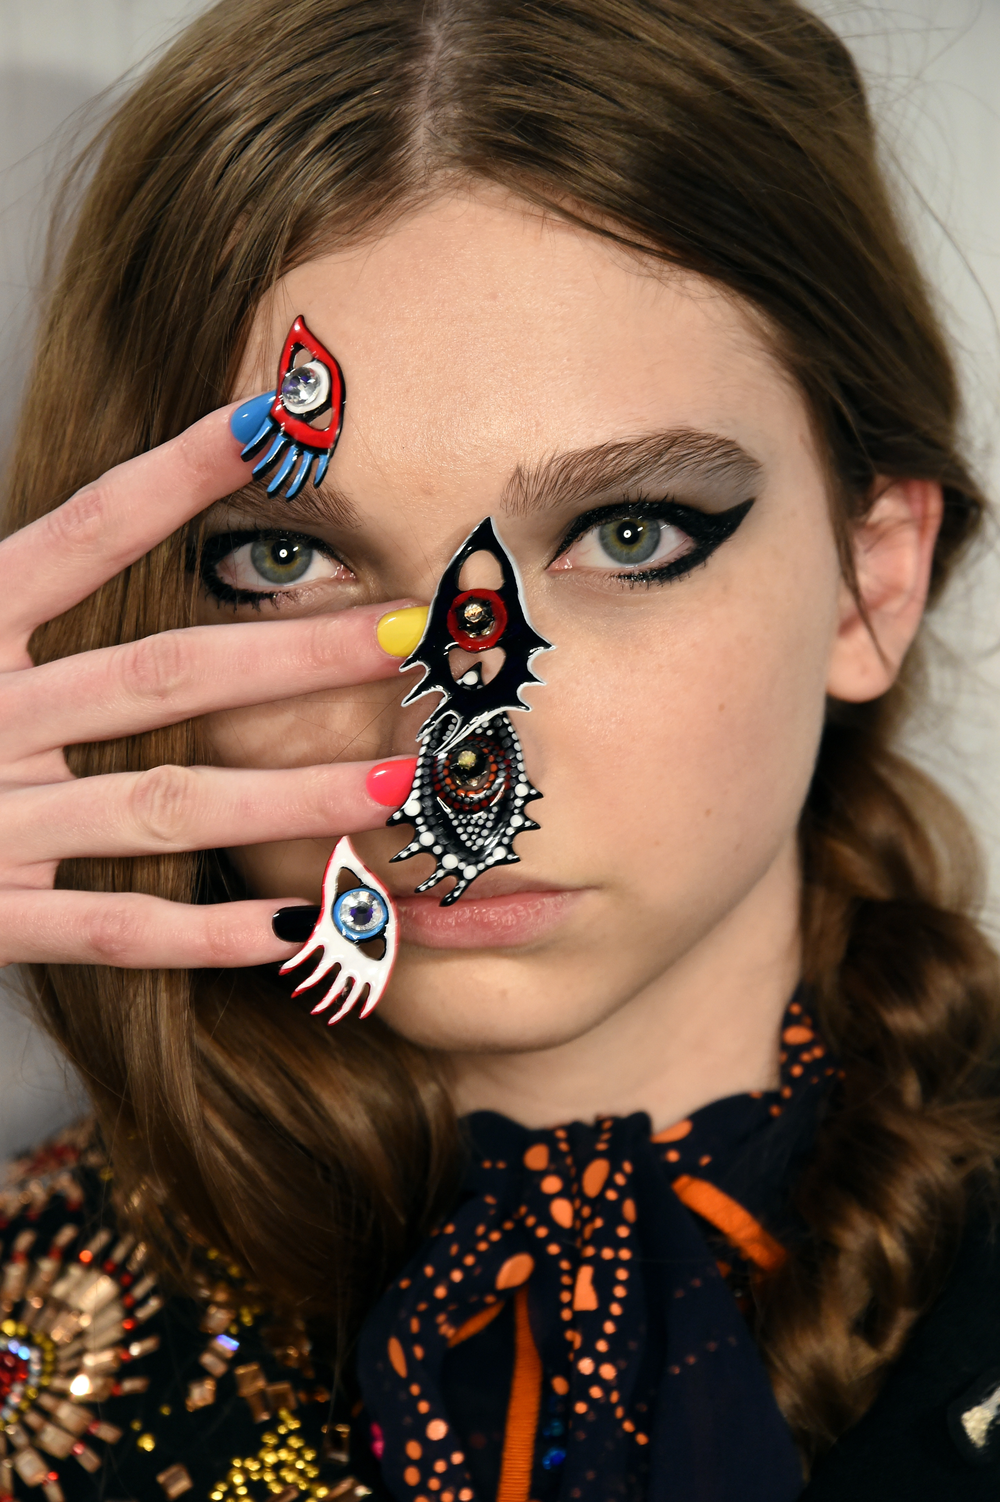 Other looks featured these hand-made eye adornments.